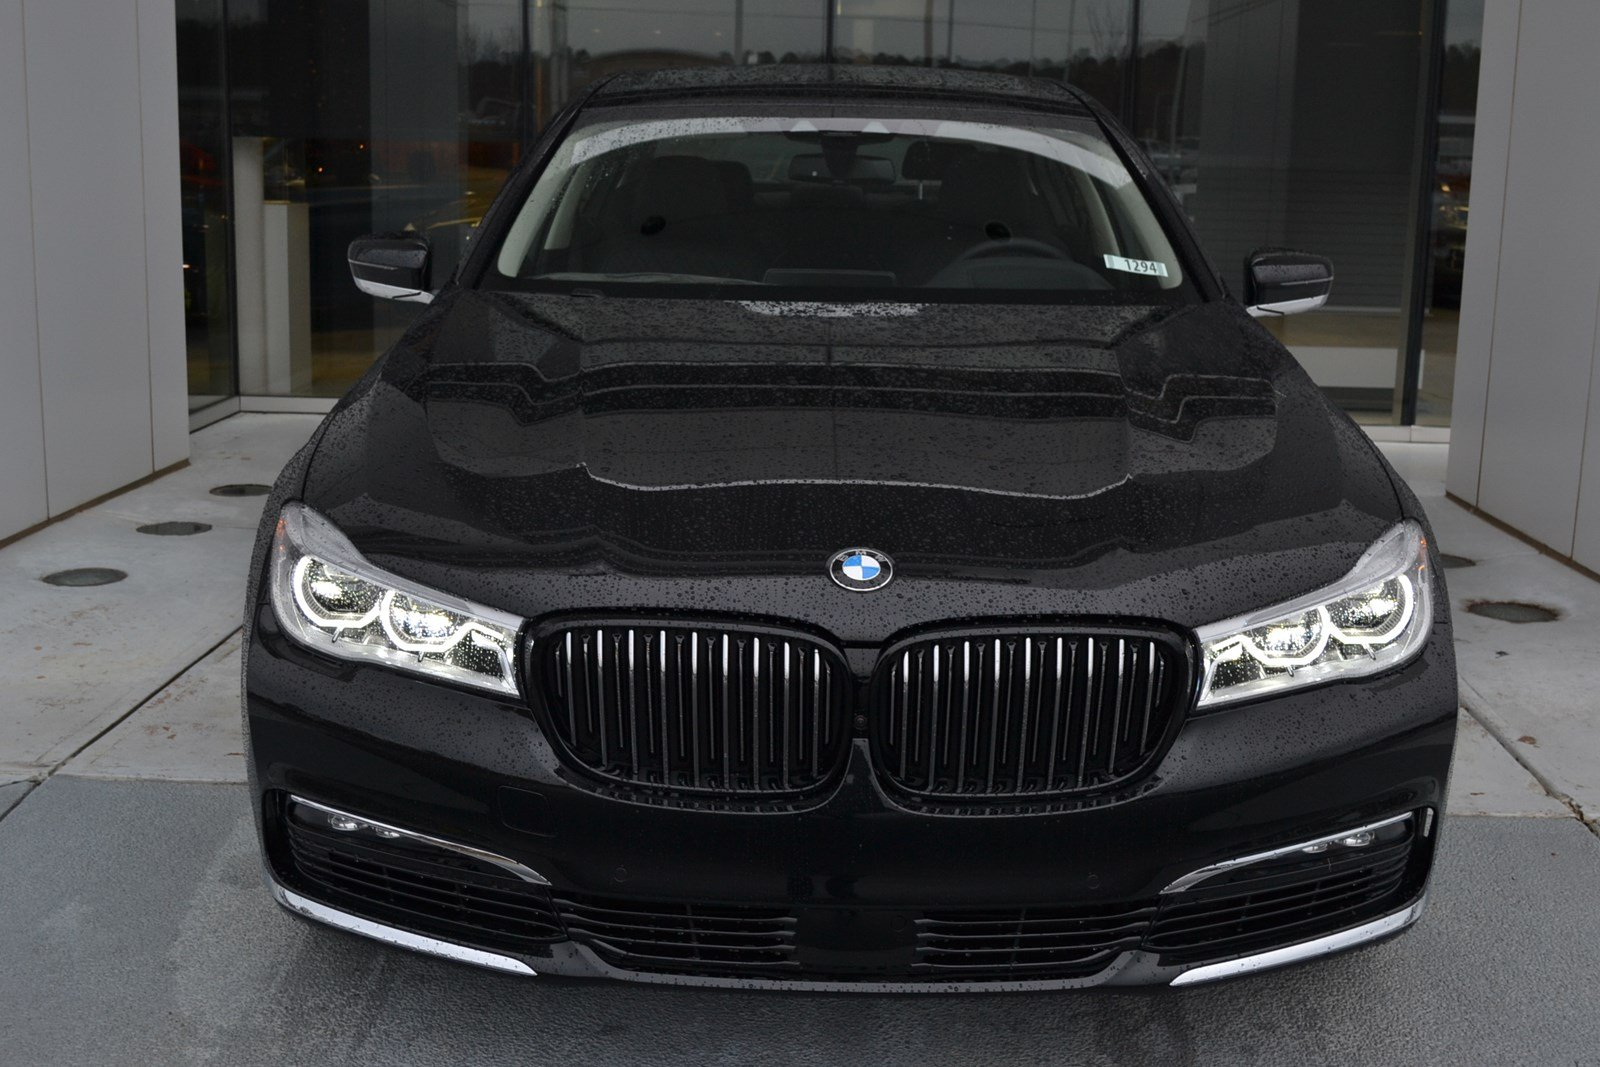 New 2018 BMW 7 Series 750i 4dr Car in Macon #B1294 ...